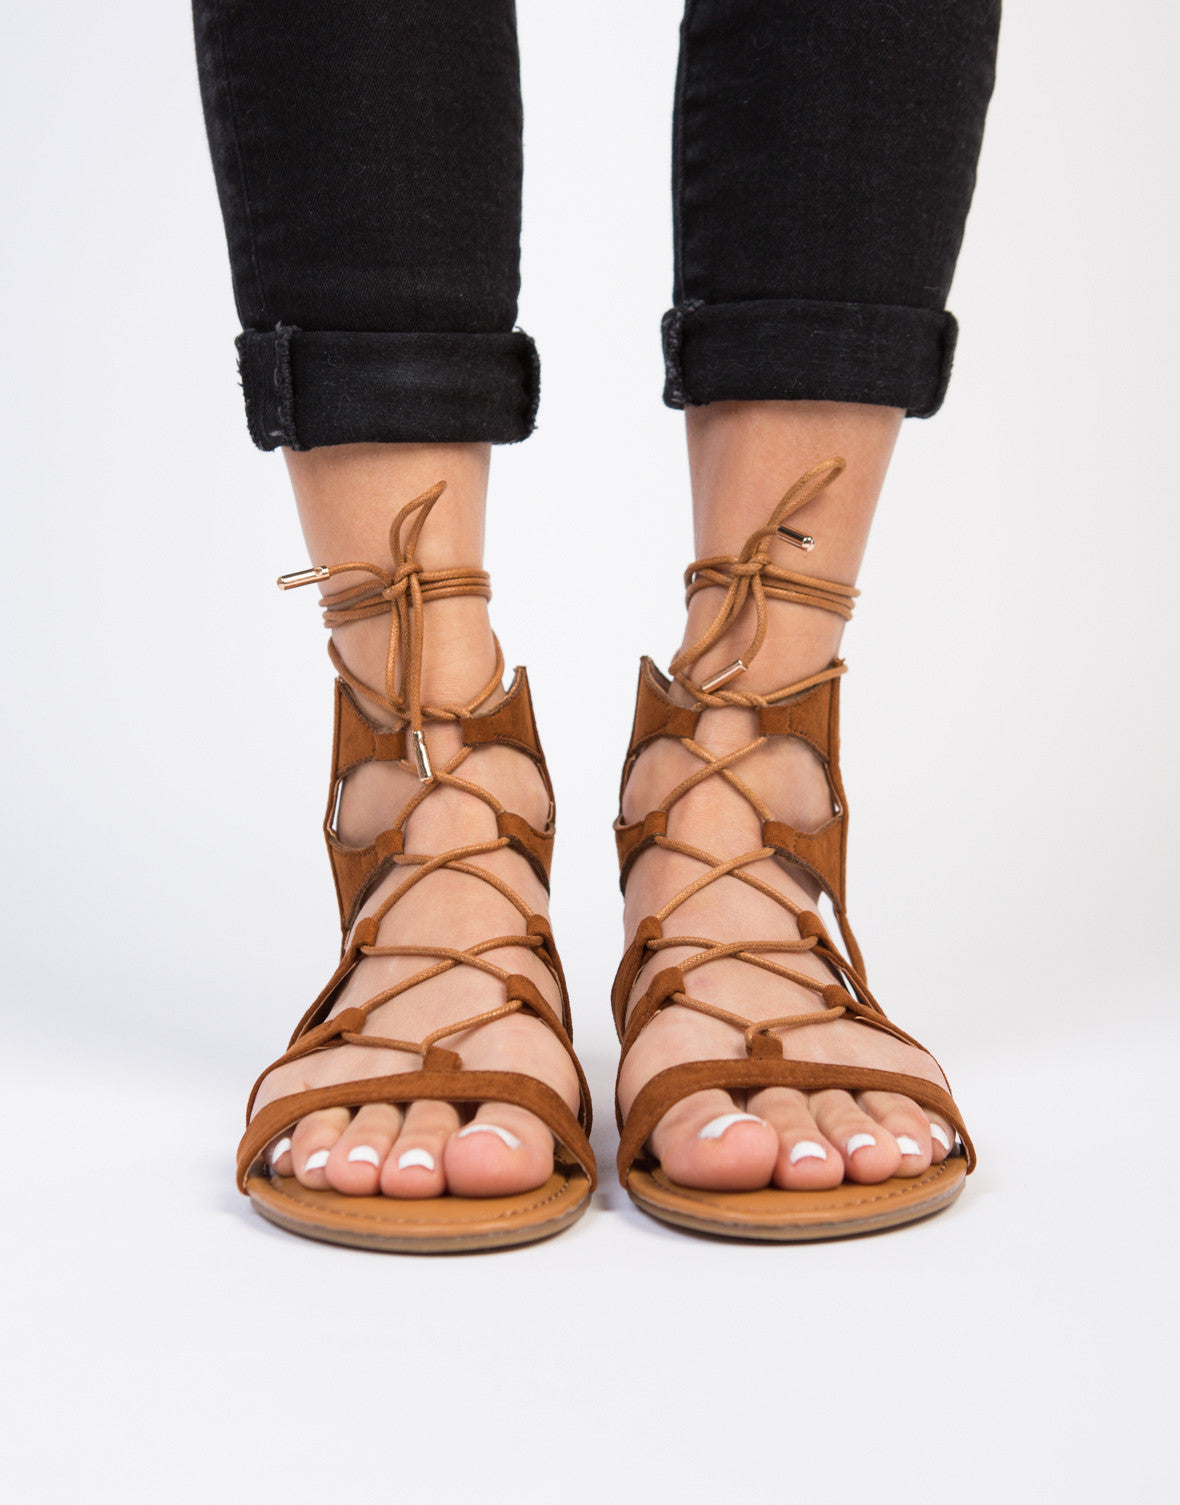 Well-liked Suede Lace-Up Sandals - Black Strappy Sandals -Suede Ankle  VY39